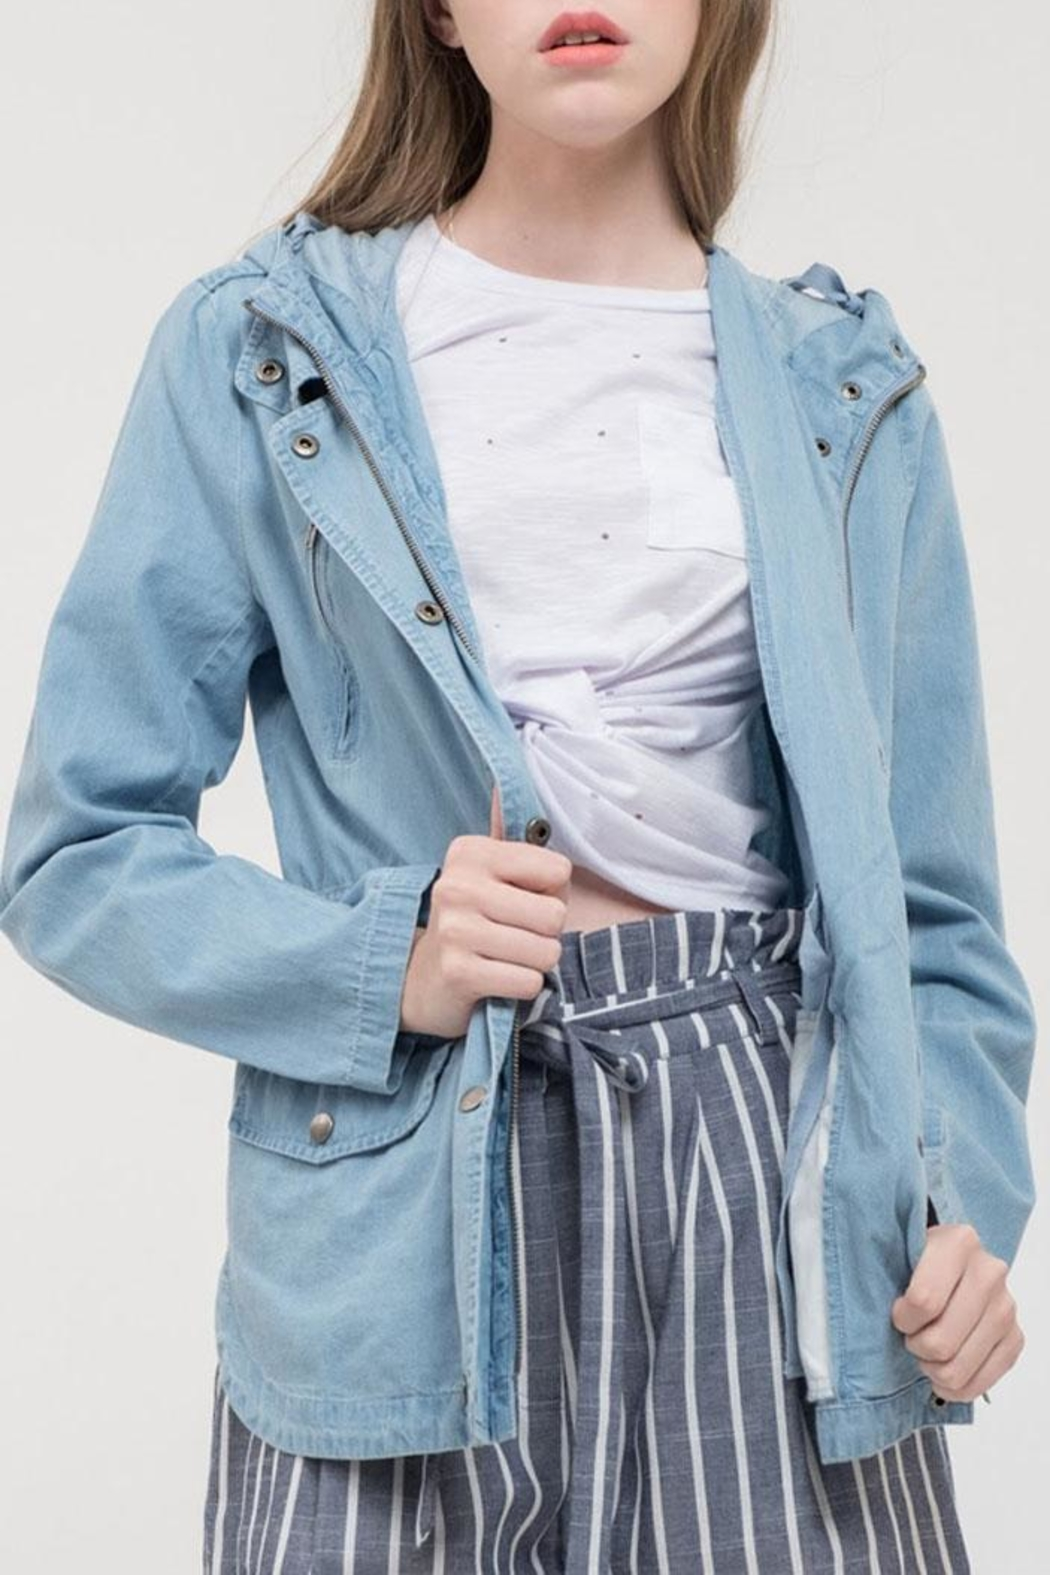 a7293a1b15c3f Lydell NYC Light Blue Jacket from Orange County by Maple Boutique ...